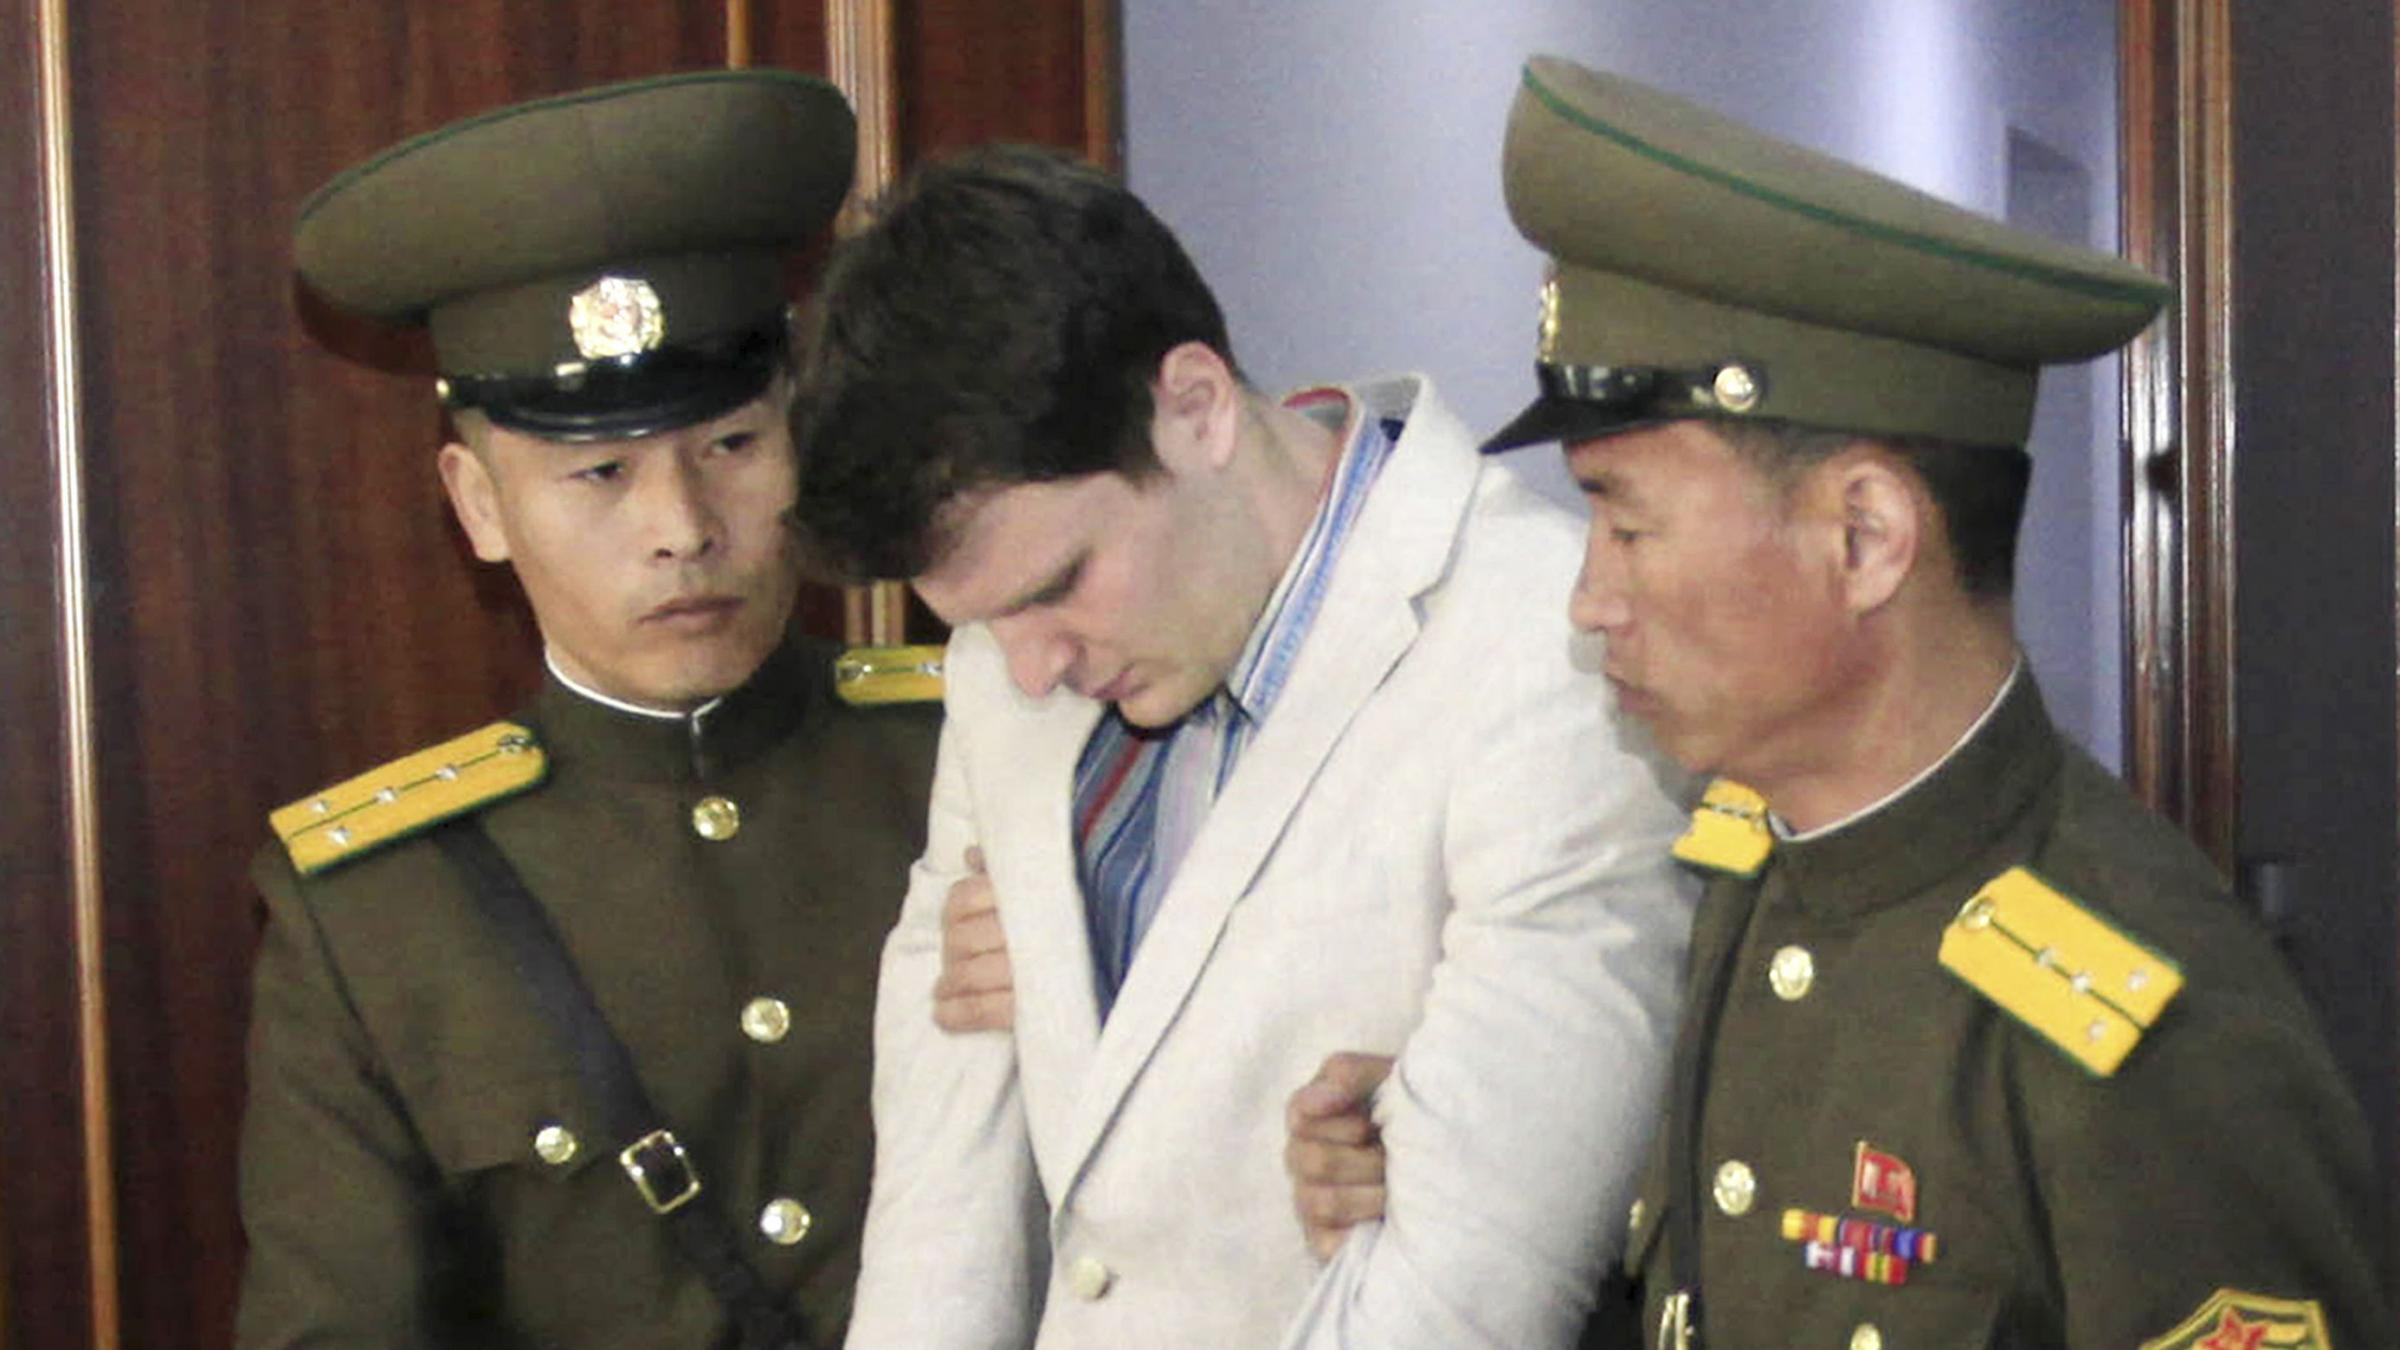 USA student, freed from North Korea with neurological injury, was 'brutalized' - father